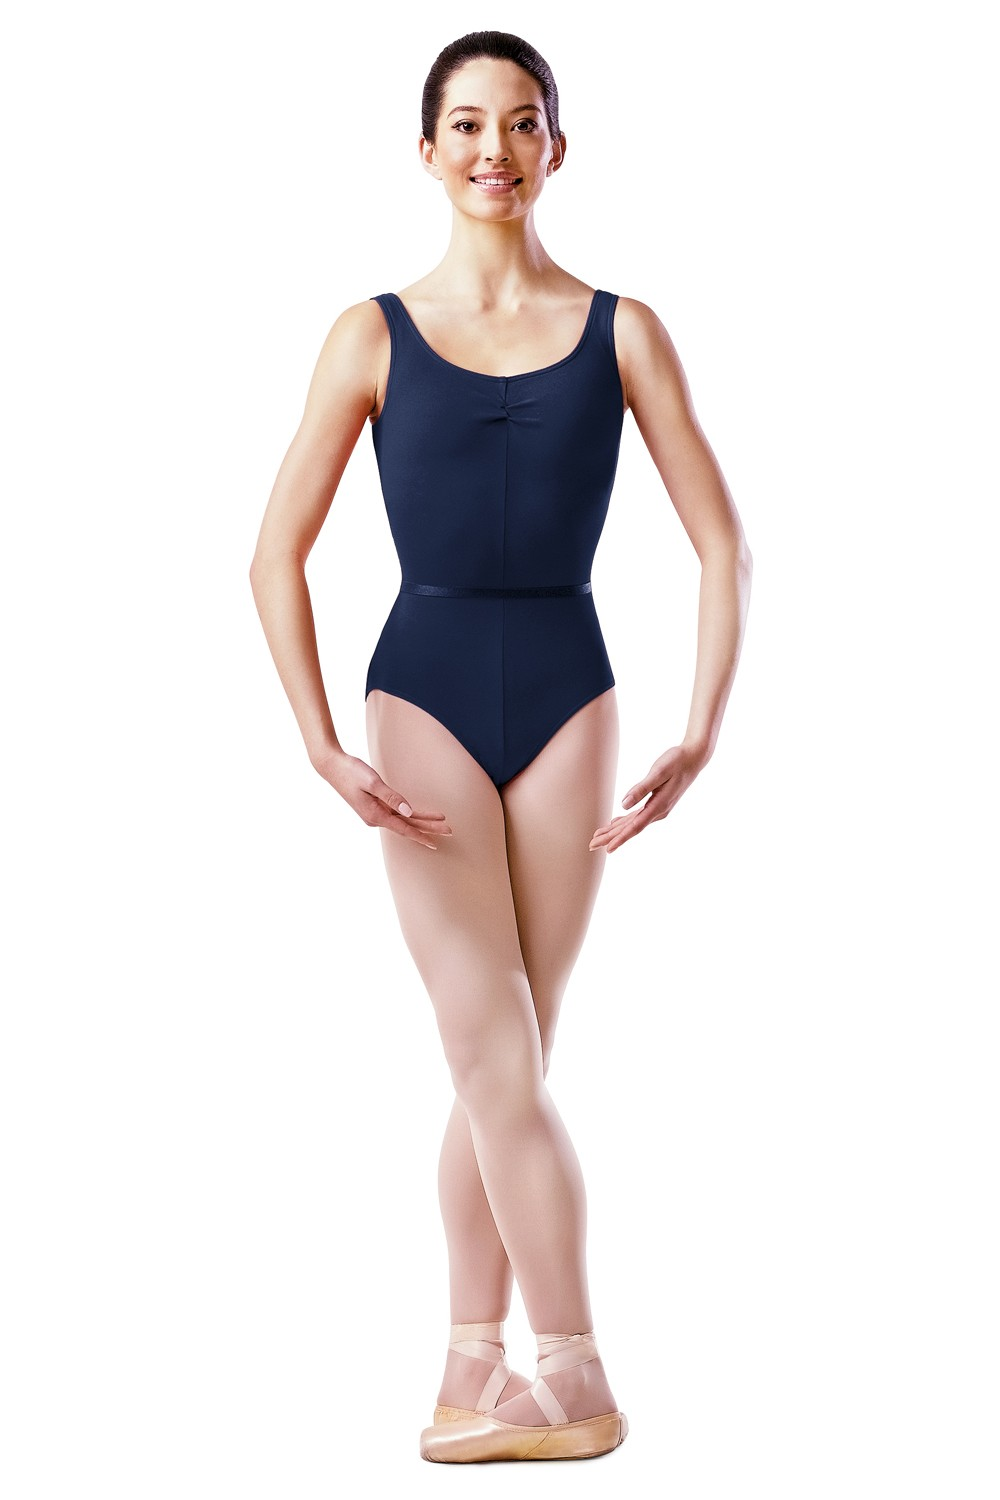 Body Con Fronte Arricciato Women's Dance Uniforms